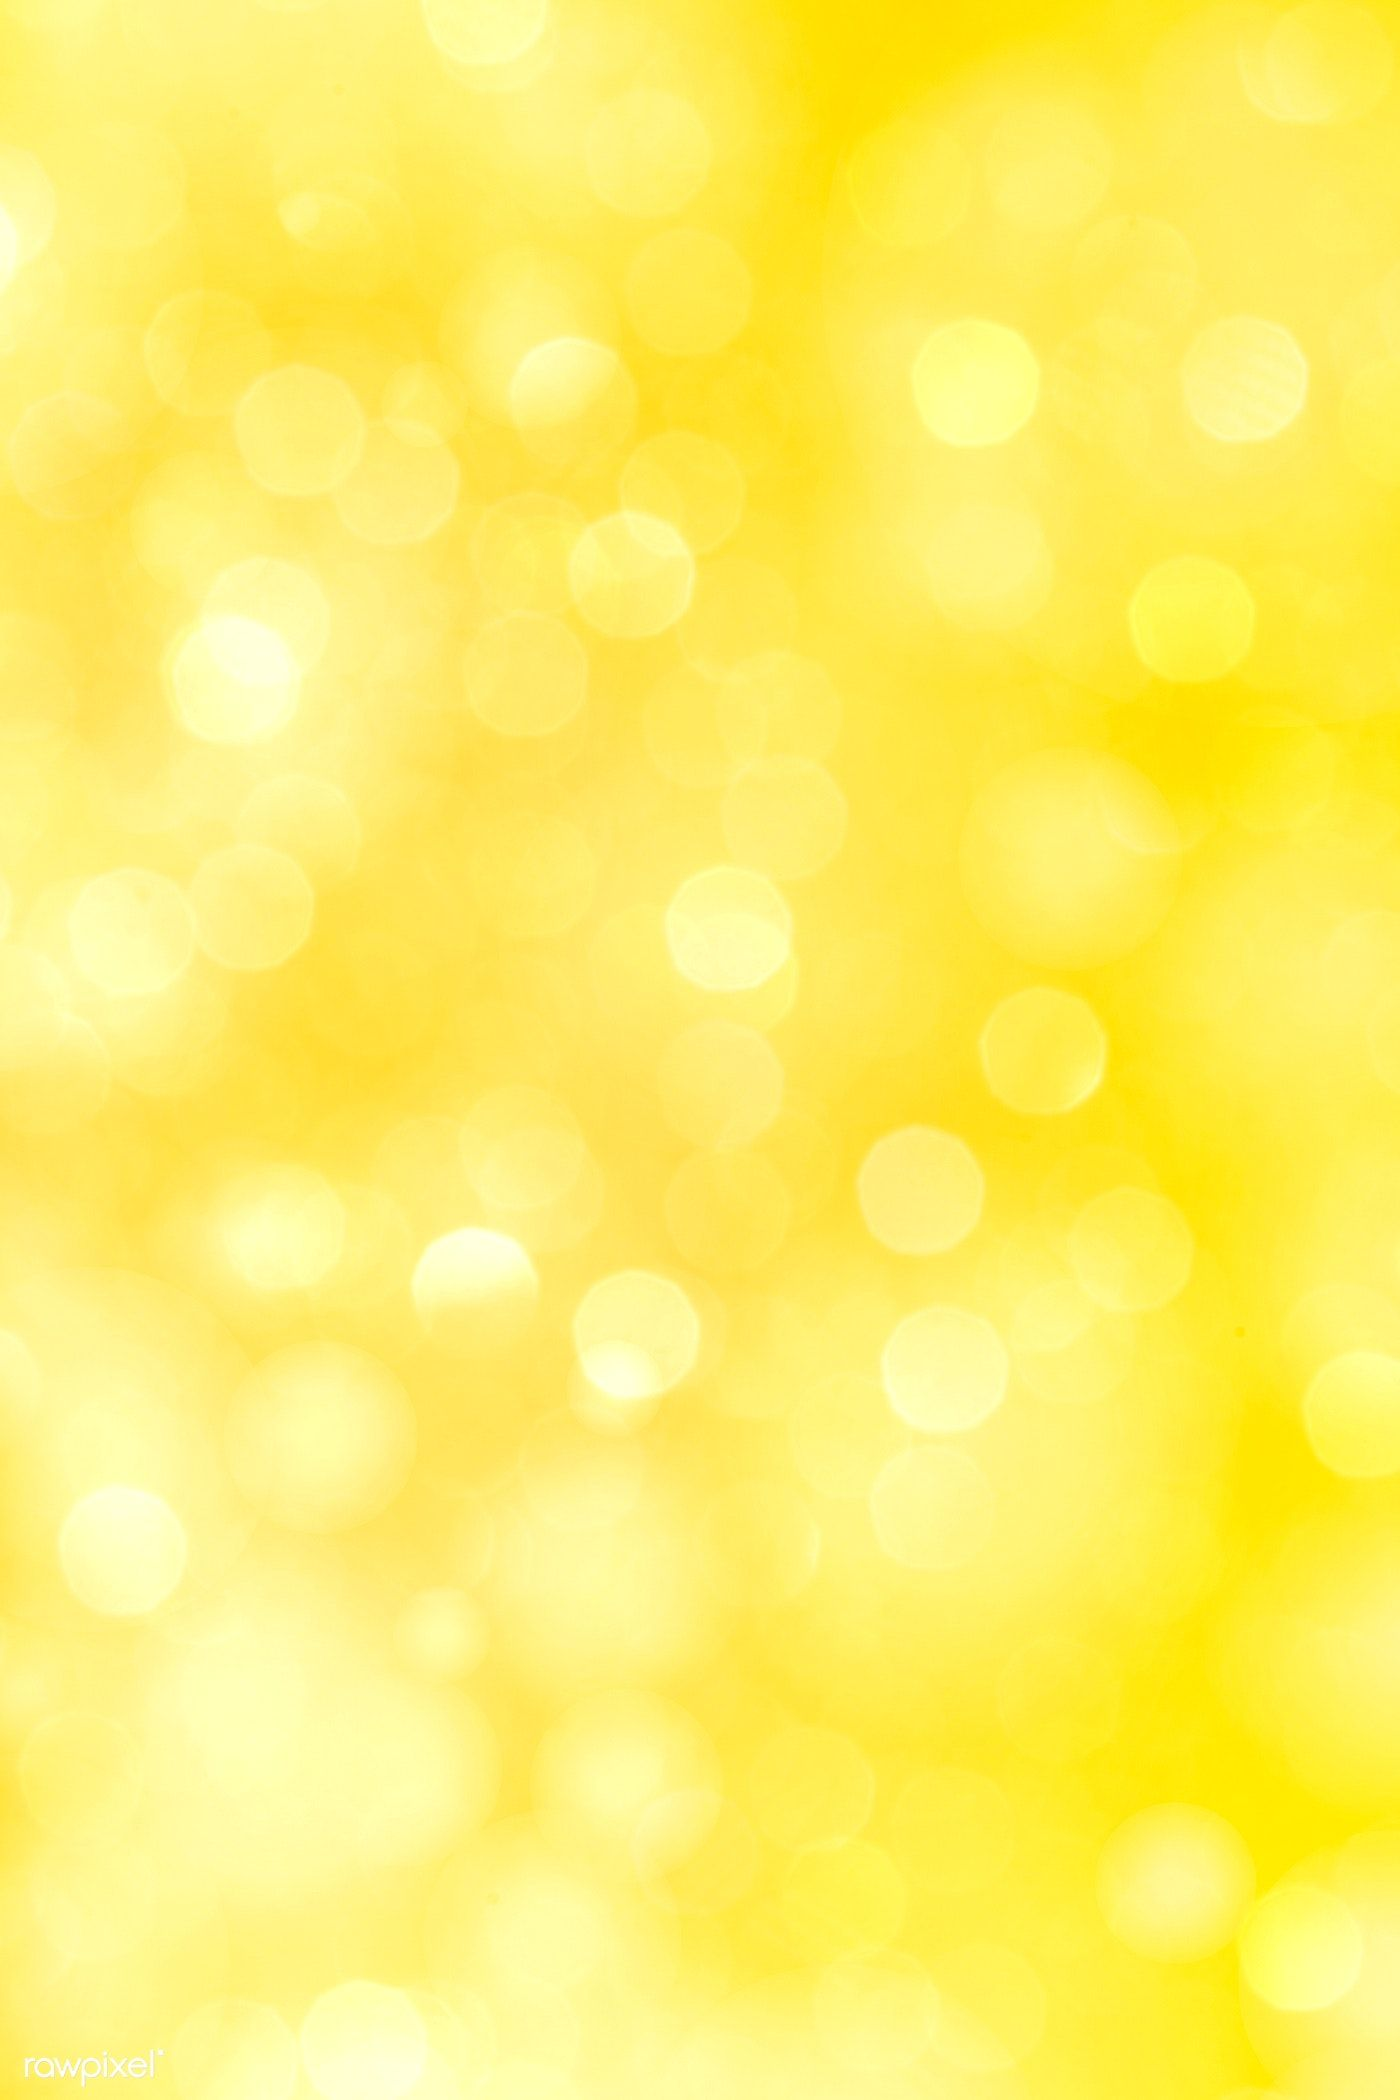 Yellow Bokeh Patterned Background Free Image By Rawpixel Com Marinemynt Background Patterns Bokeh Background